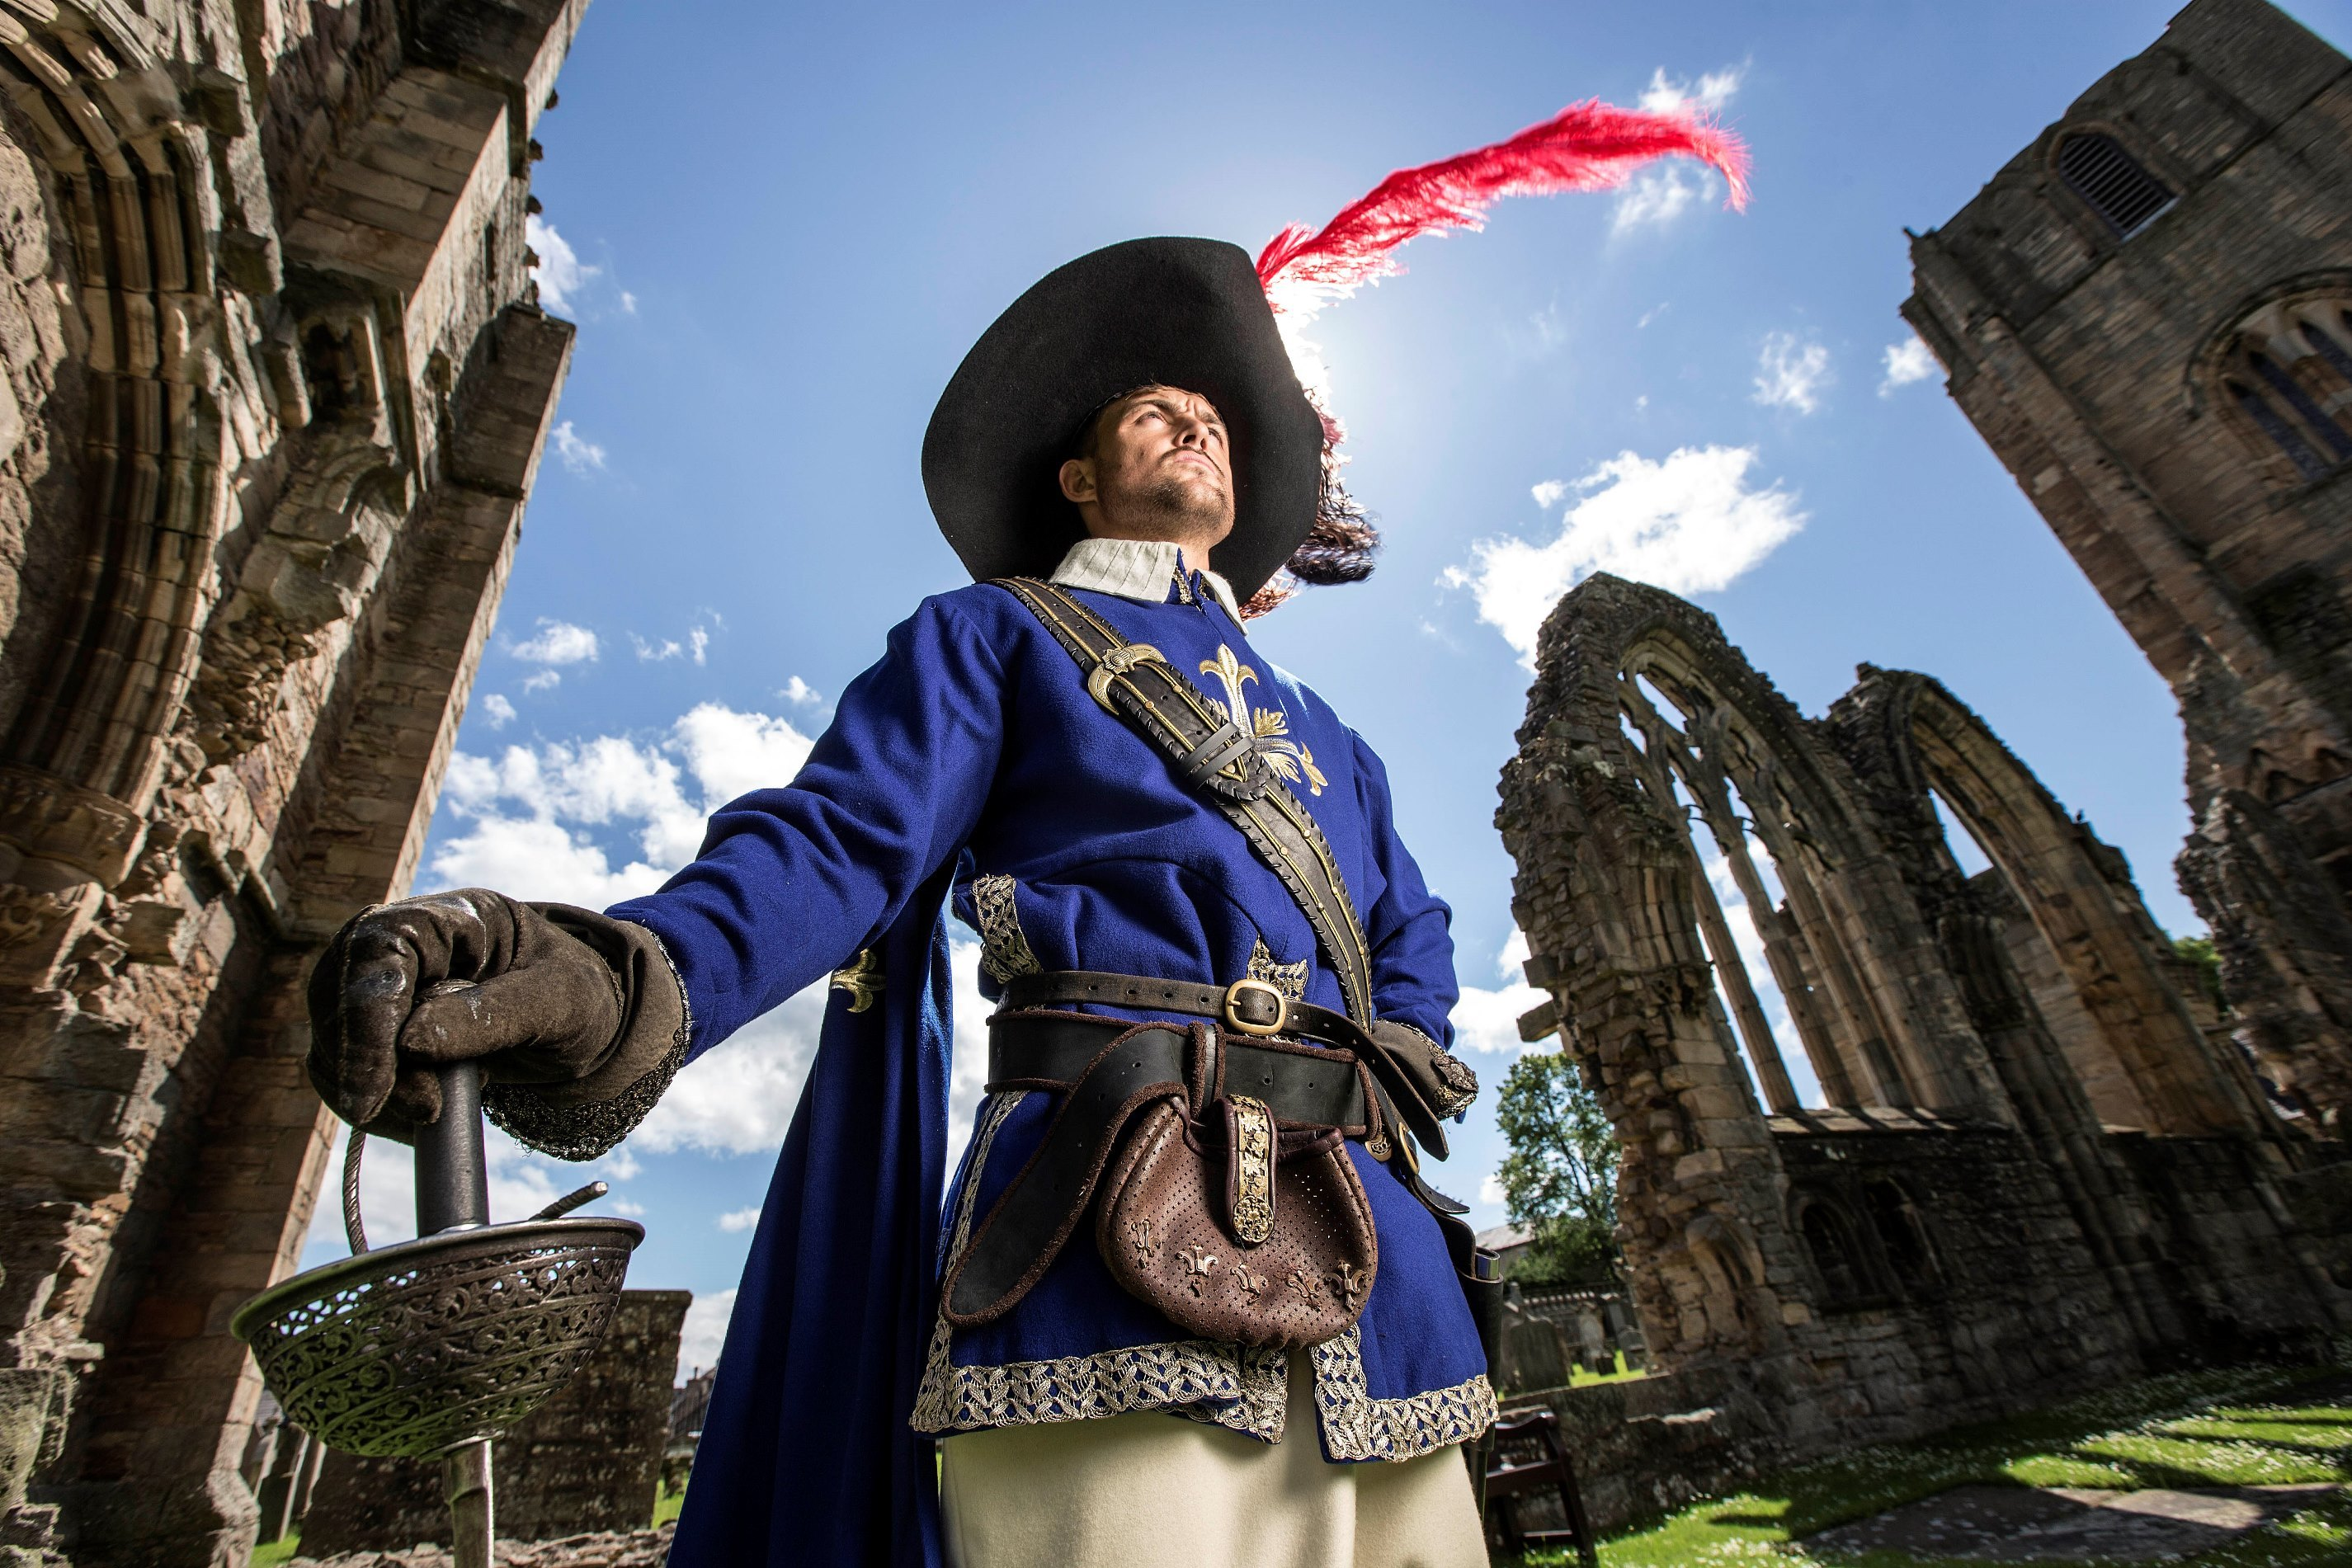 The Three Musketeers will be performed at Elgin Cathedral